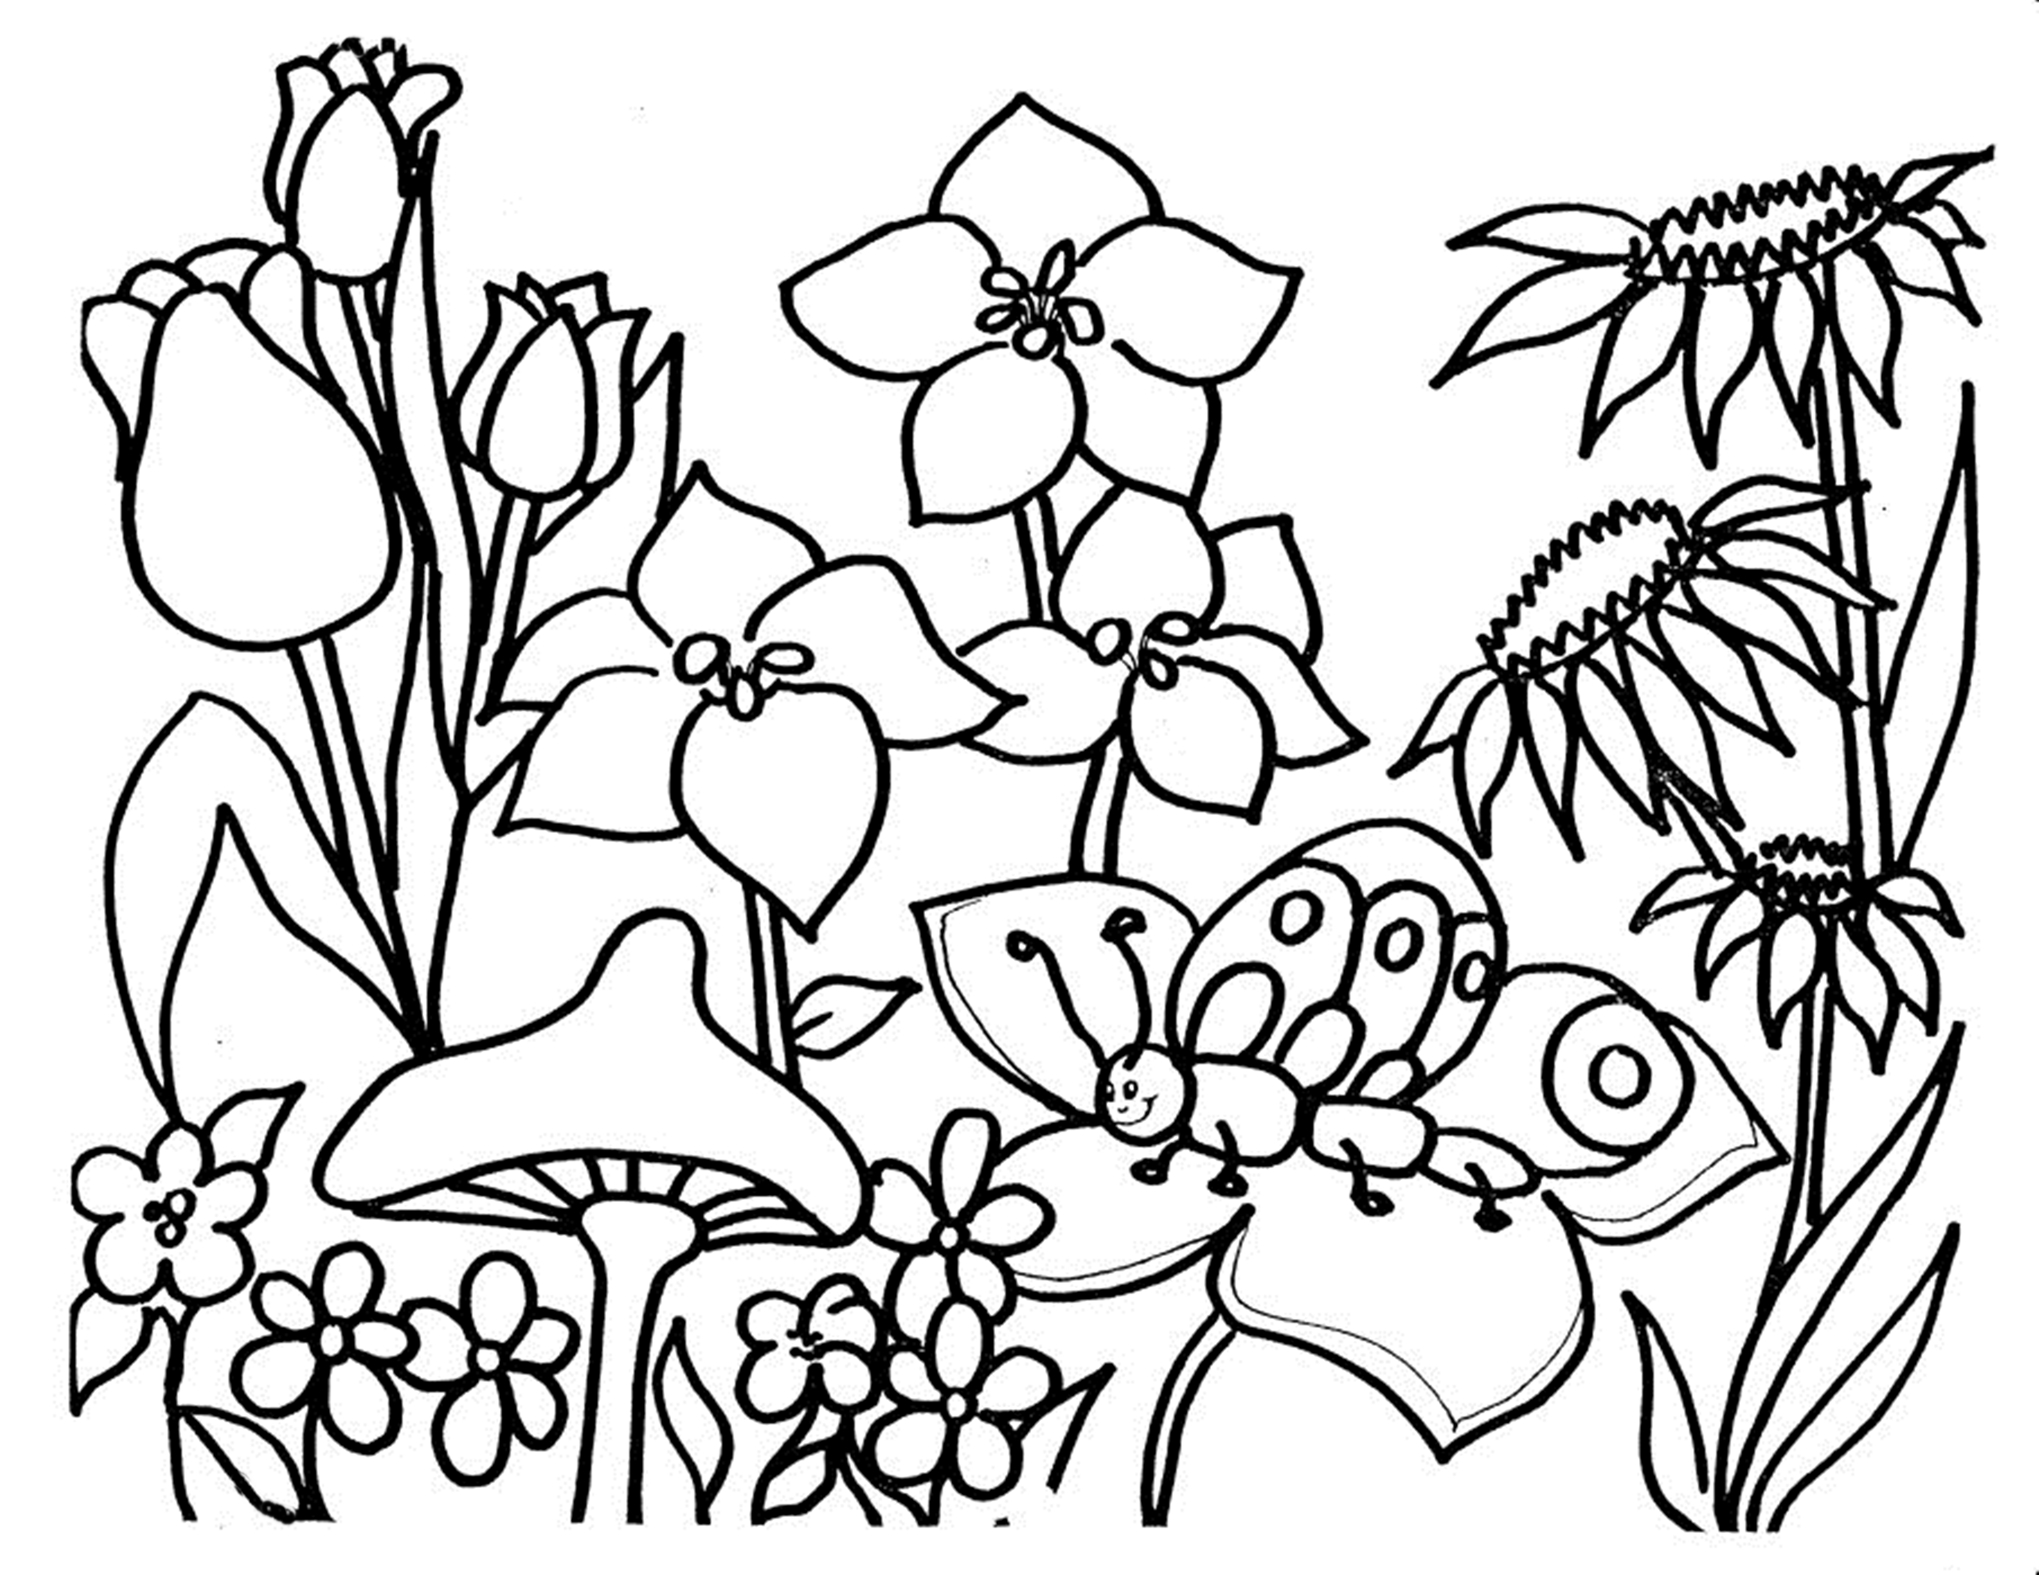 pictures to colour in of flowers flower coloring pages for adults best coloring pages for flowers in to pictures colour of